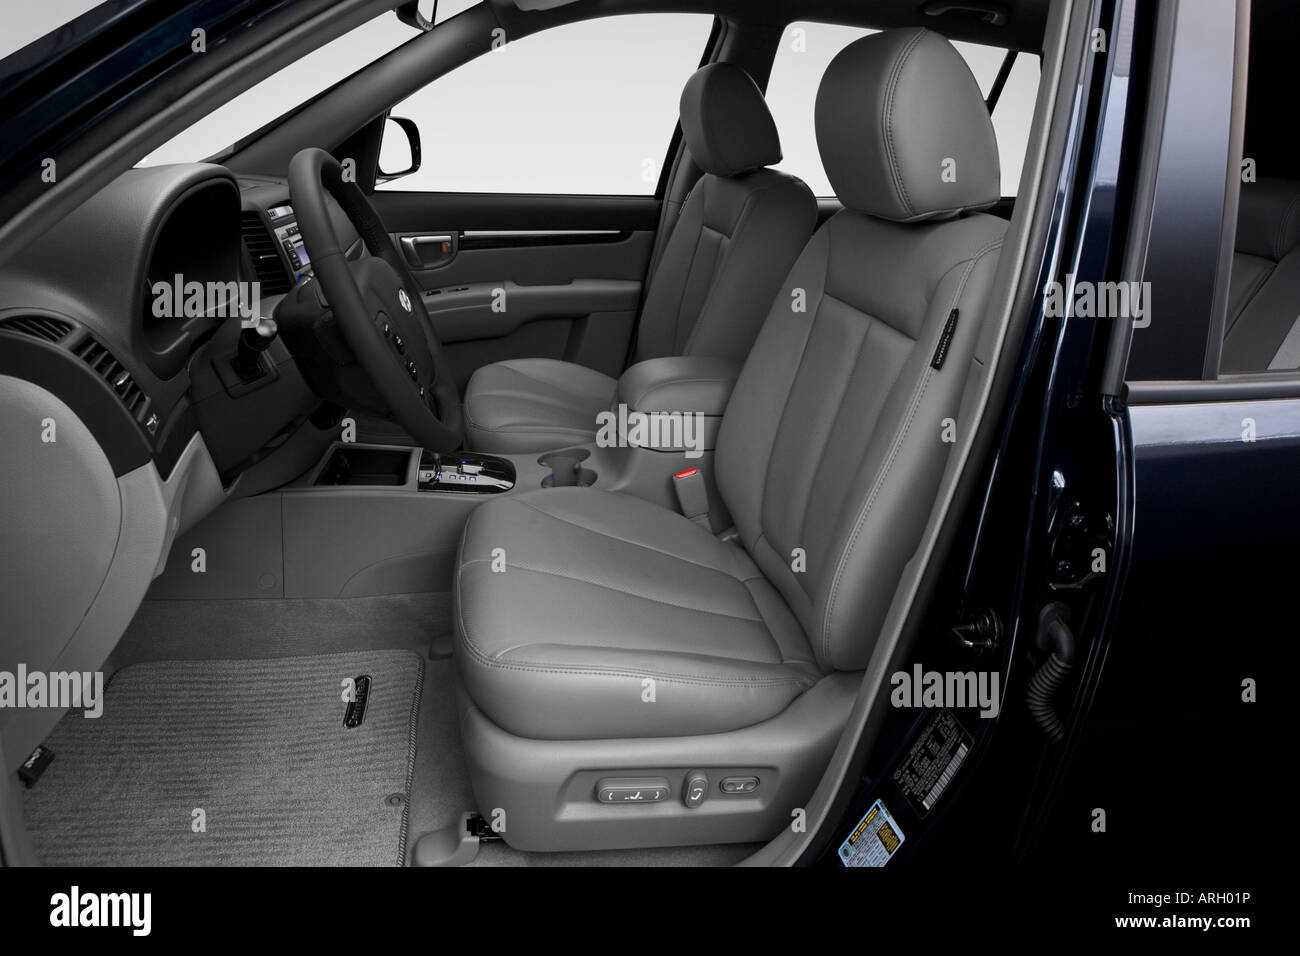 2007 hyundai santa fe limited in blue front seats stock. Black Bedroom Furniture Sets. Home Design Ideas